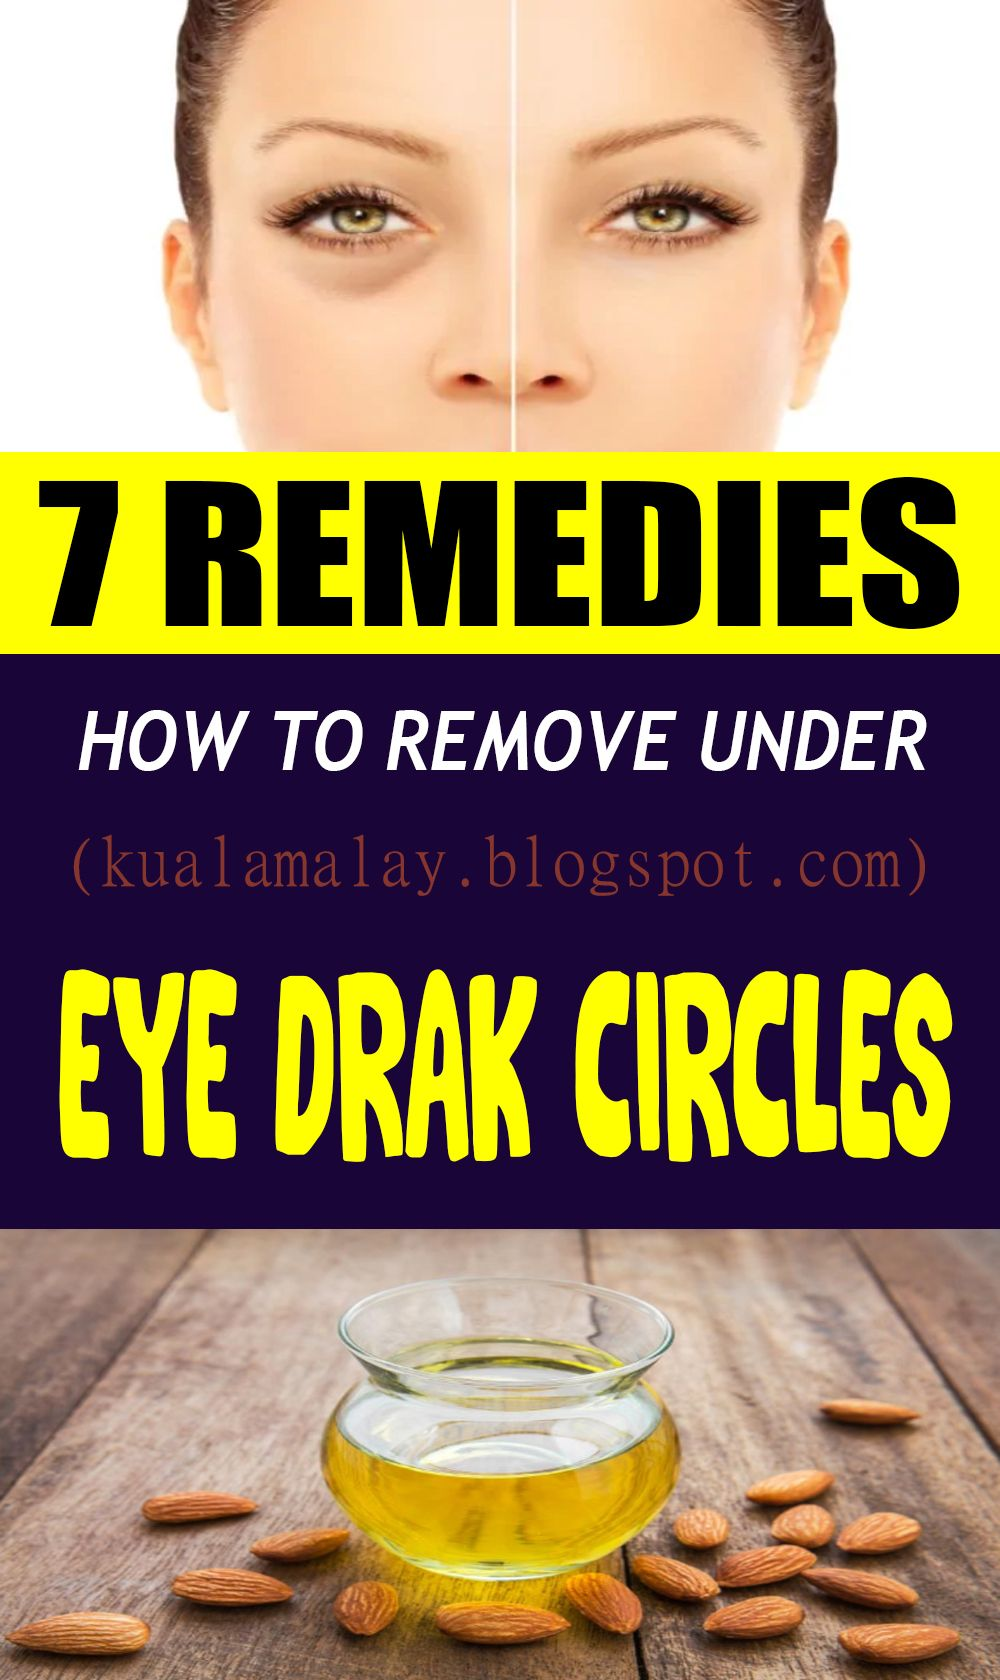 7 Remedies How To Remove Under Eye Dark Circles | Remedies ...